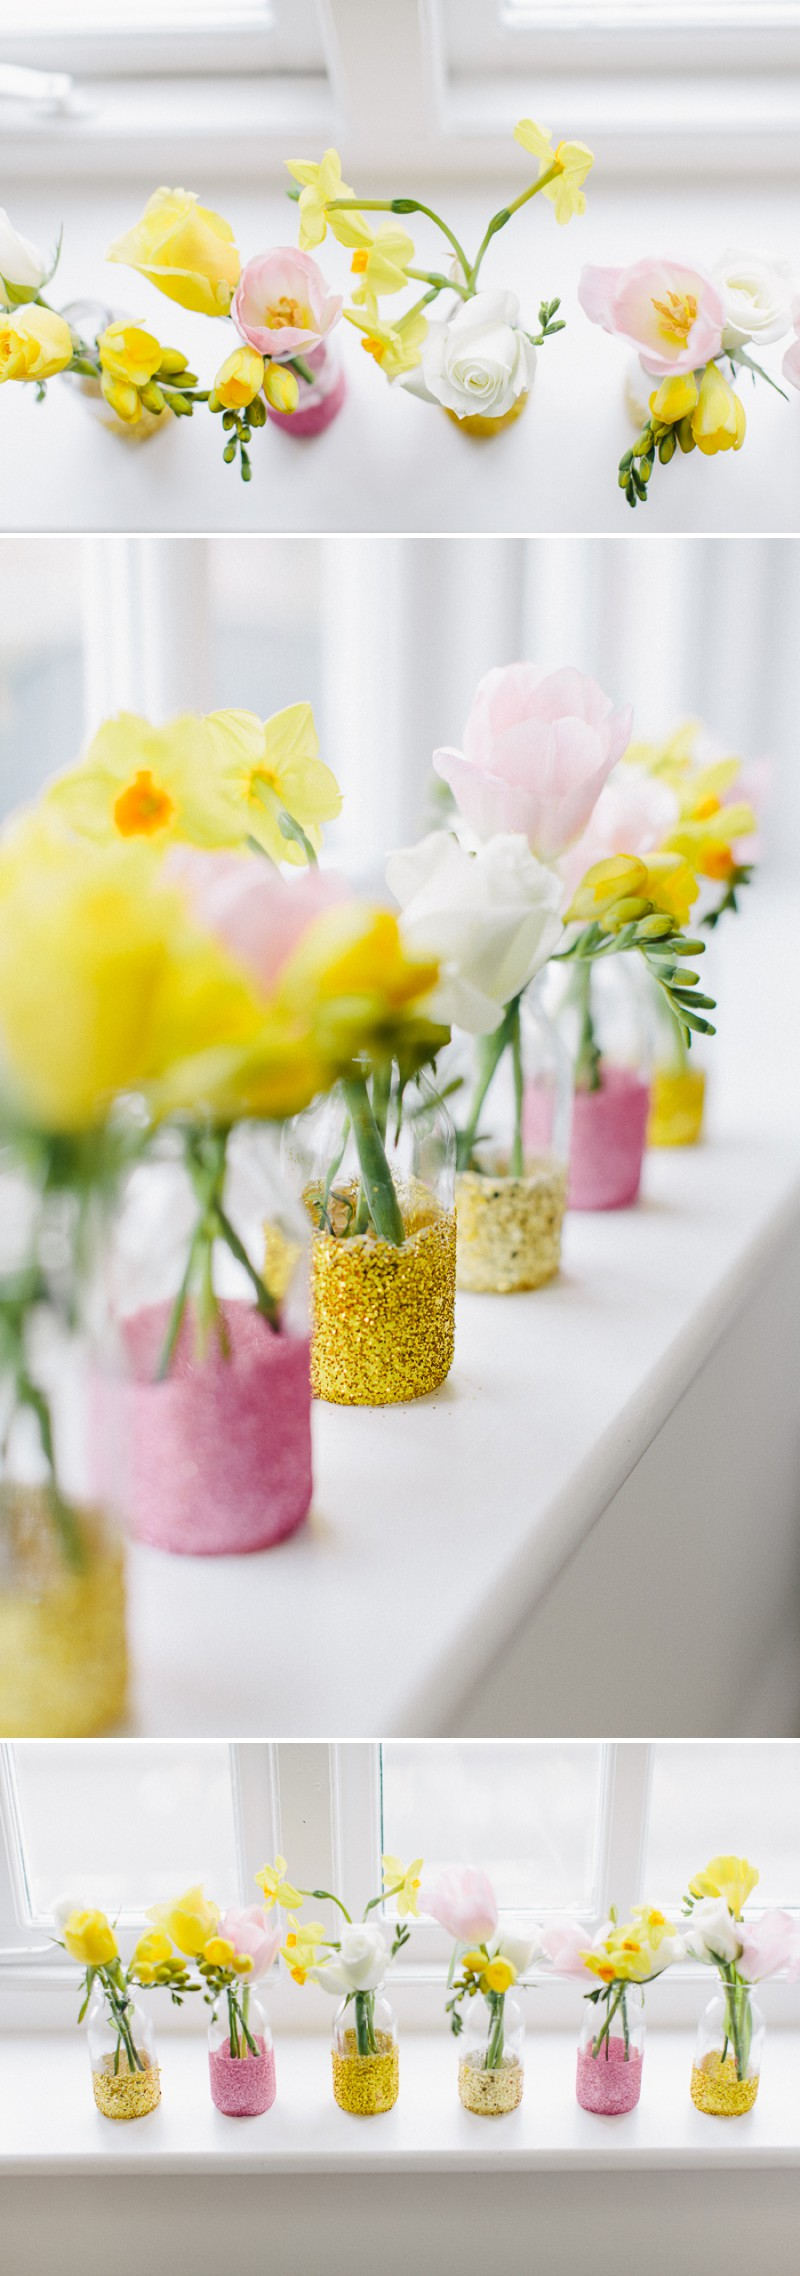 How to create a golden glittery jar bud vase for your wedding table settings and floral centrepieces._0005